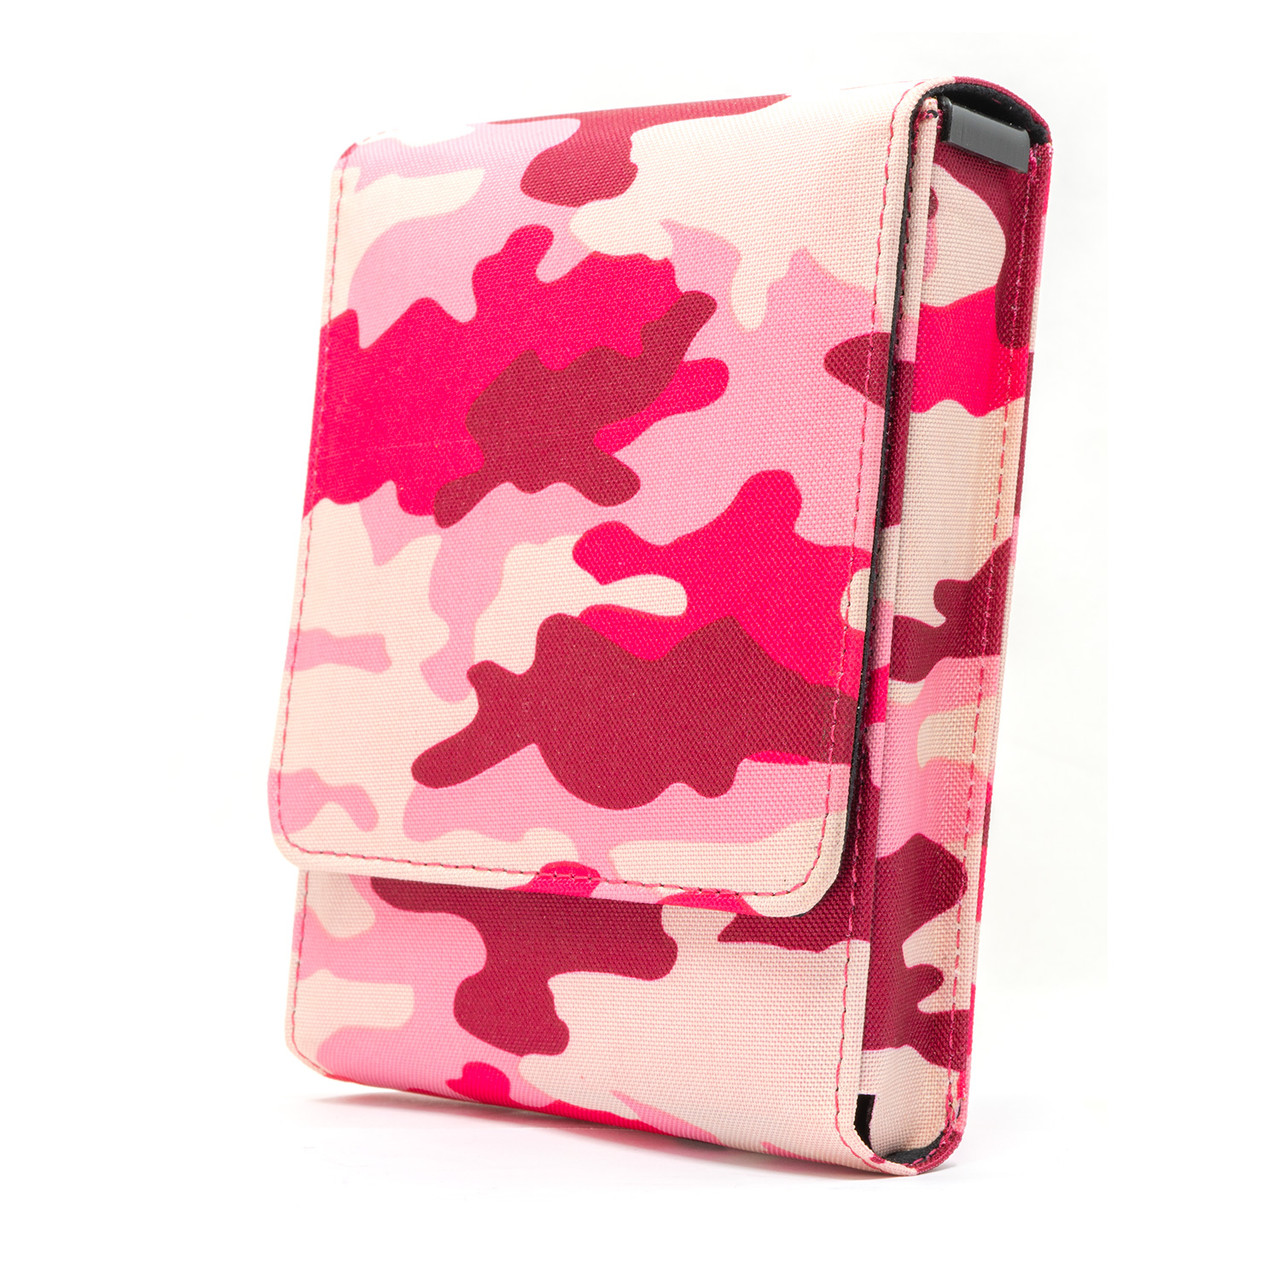 Glock 19X Pink Camouflage Series Holster